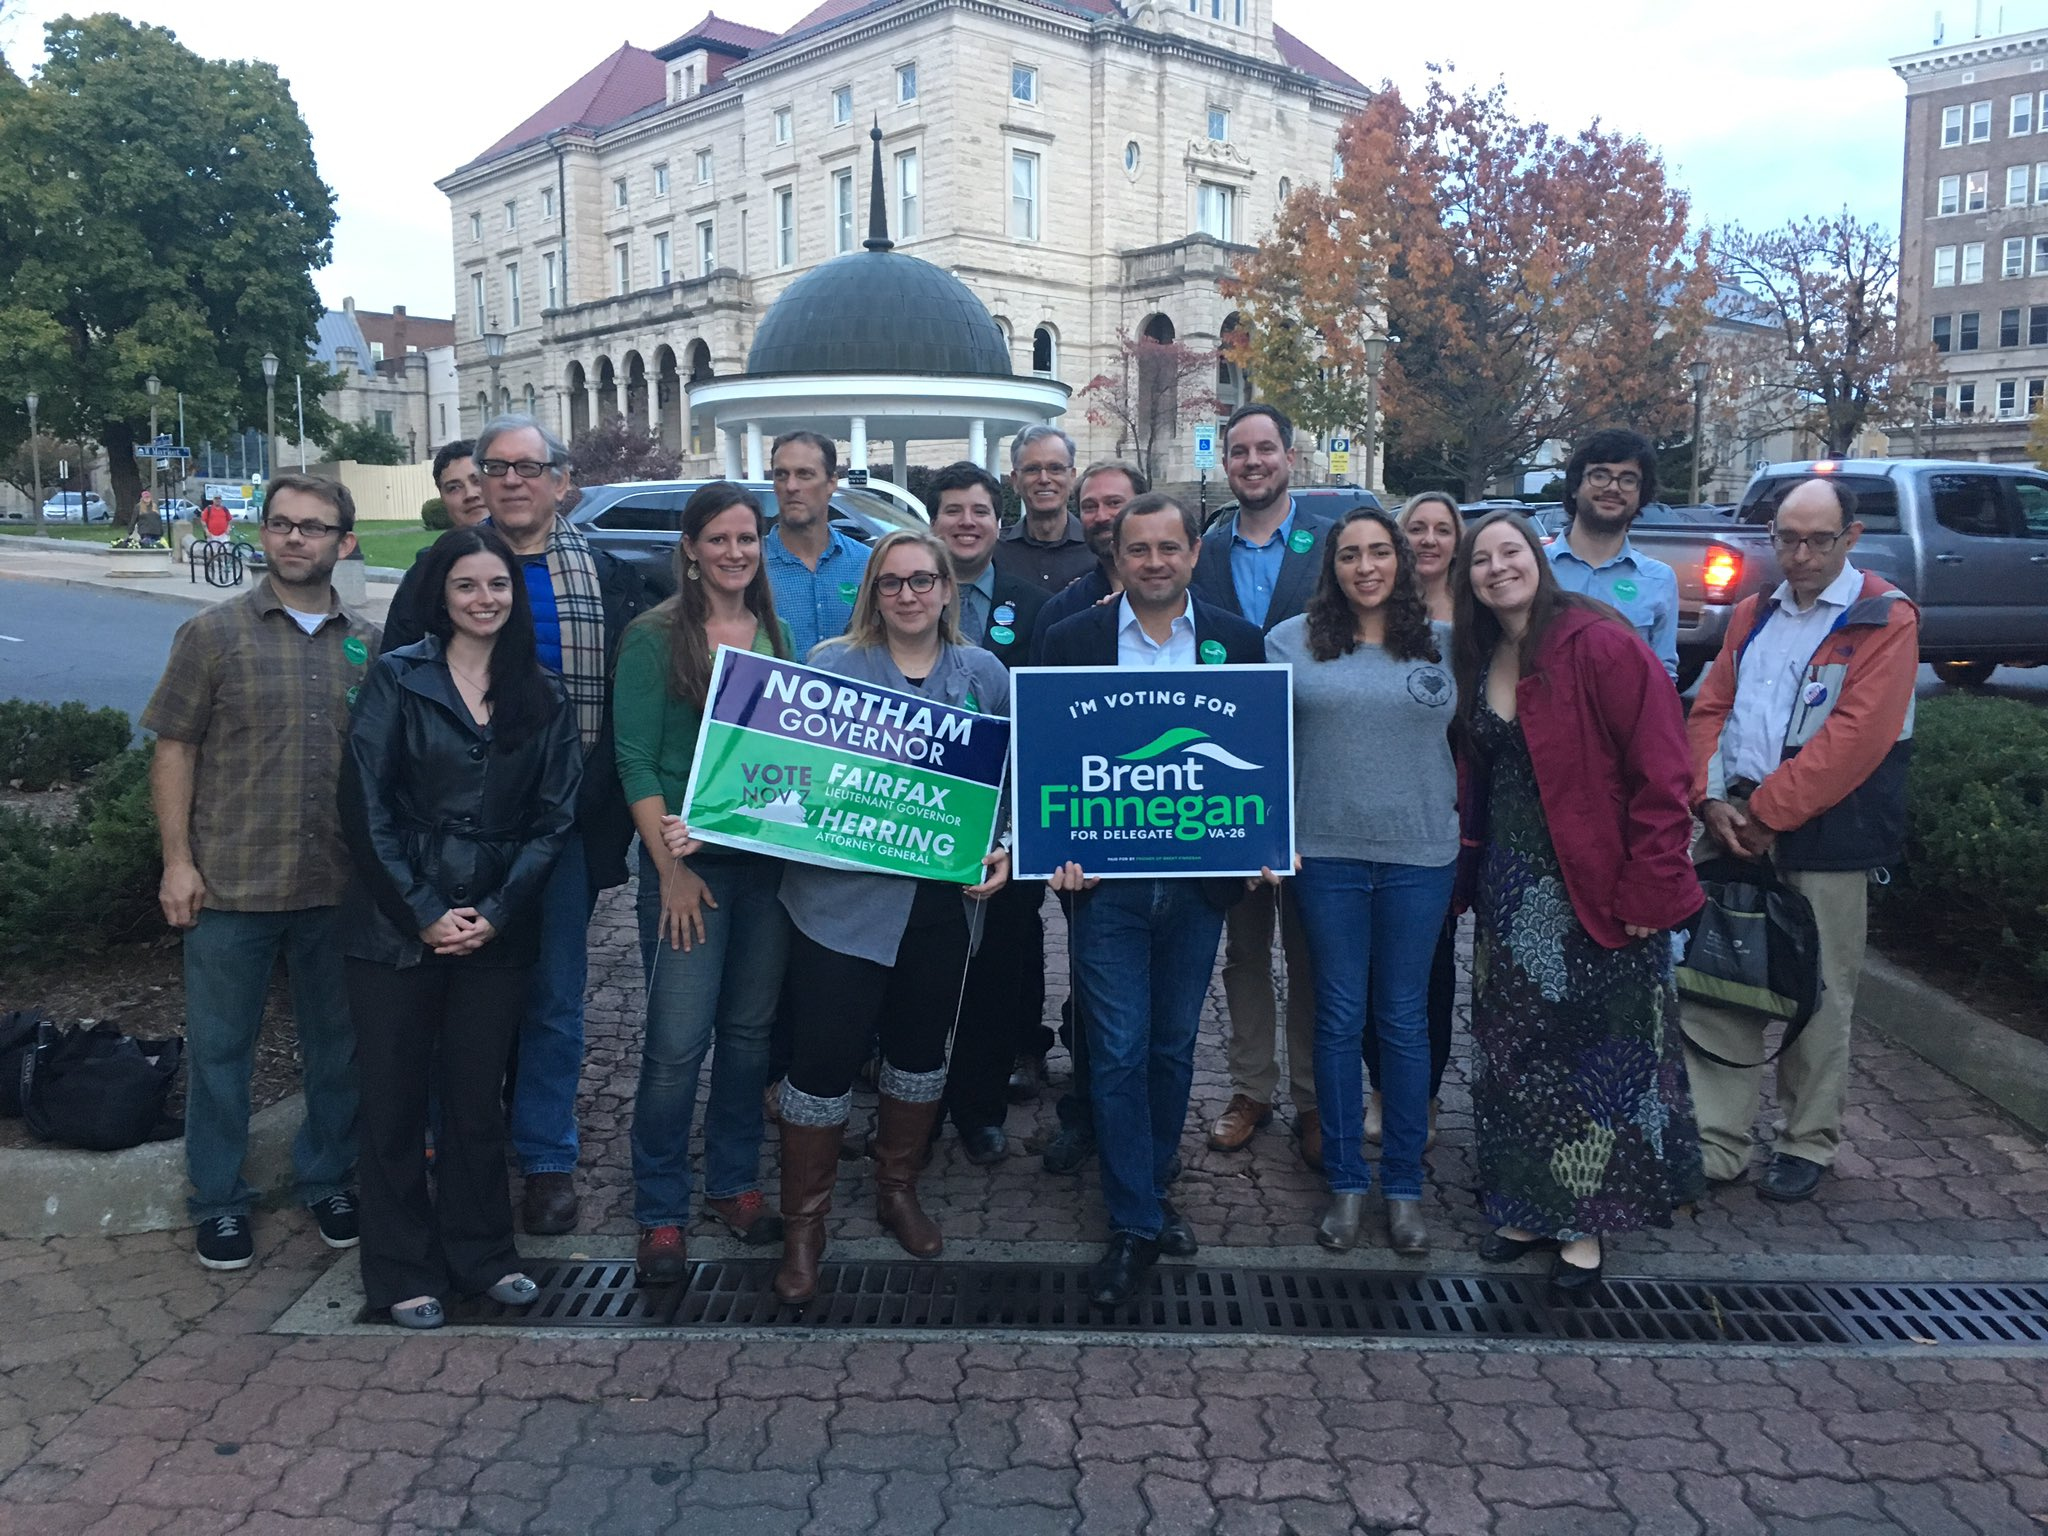 Loved First Fridays in H-burg with future Delegate @BFinnegan and his supervolunteers! #BlueValley https://t.co/2wjtOZm8LF